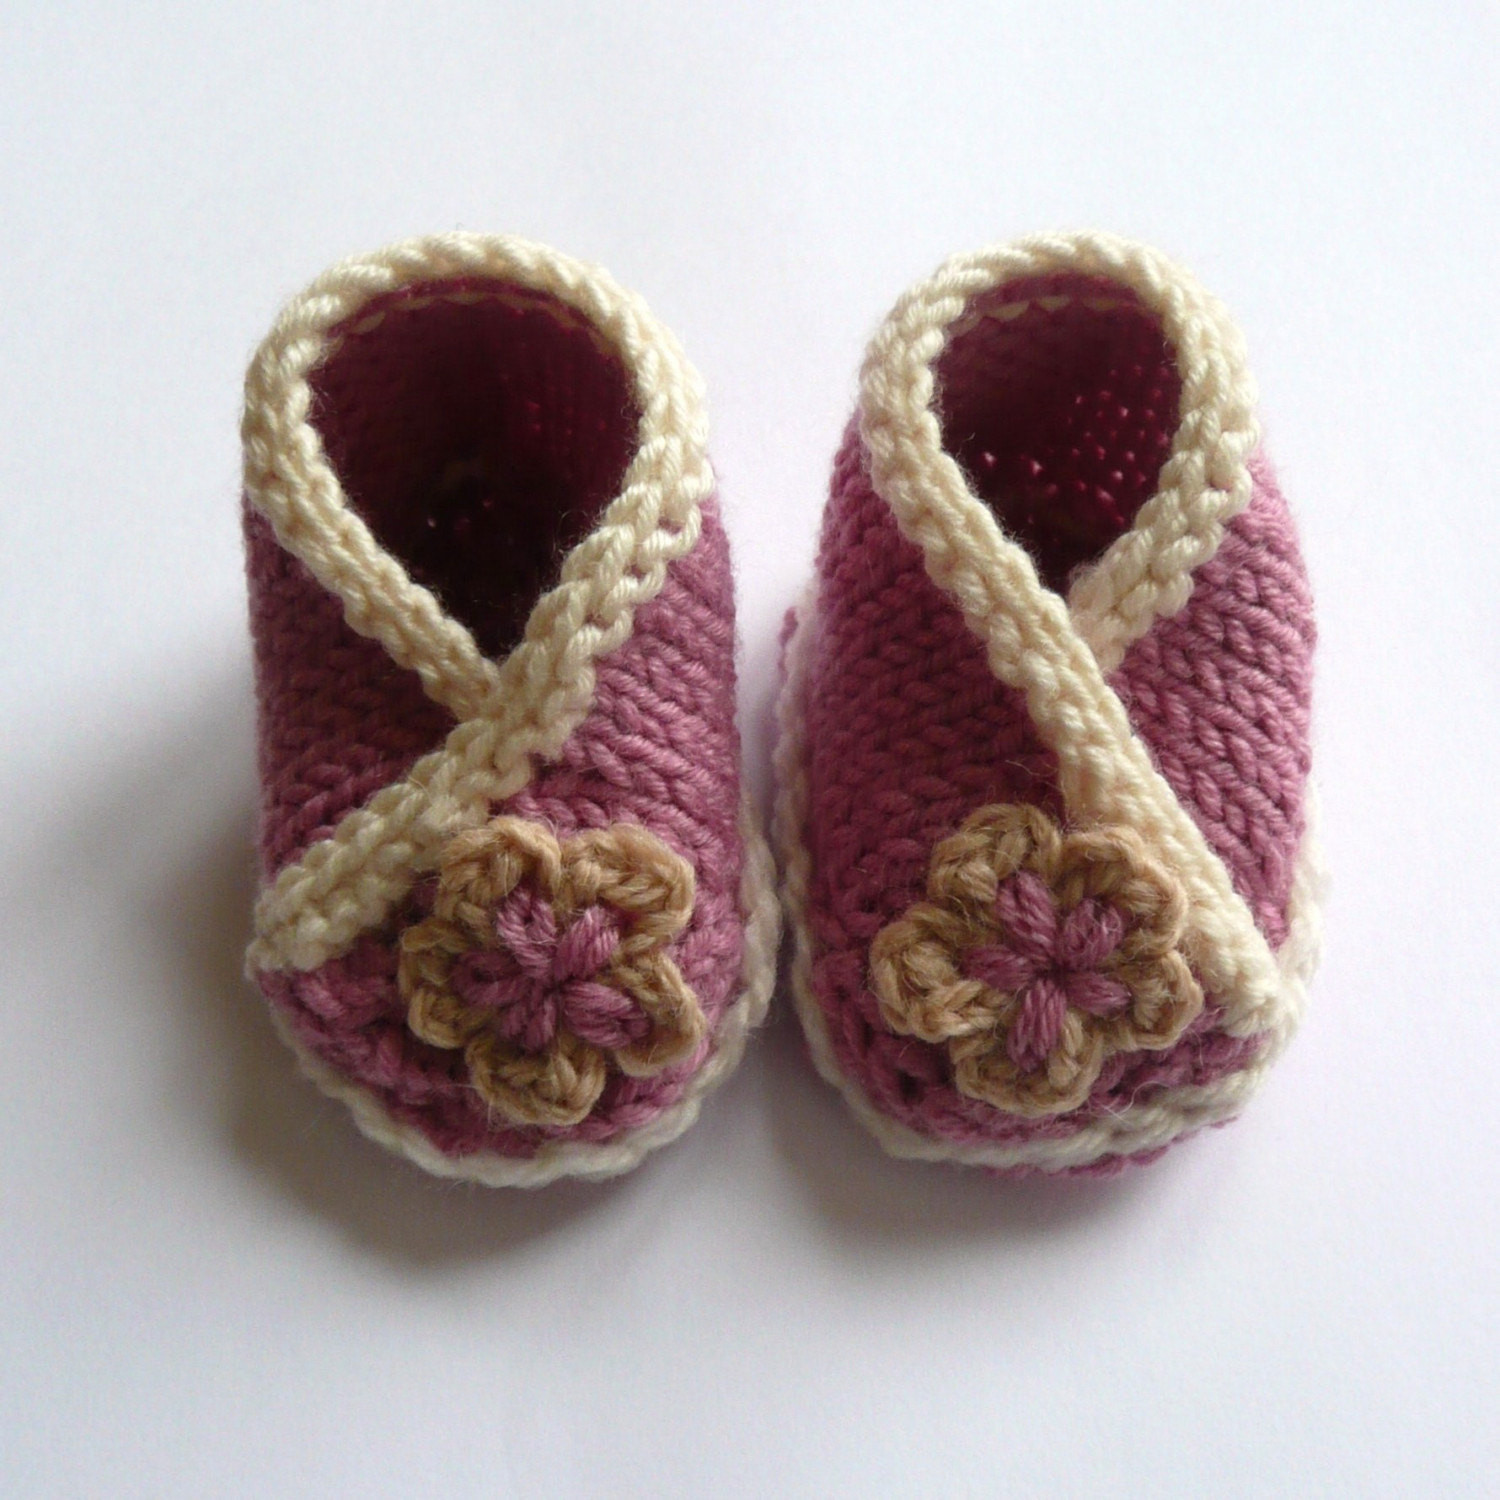 Unique Baby Booties Crochet Pattern Pdf Free Crochet Baby Slippers Of Marvelous 50 Images Crochet Baby Slippers